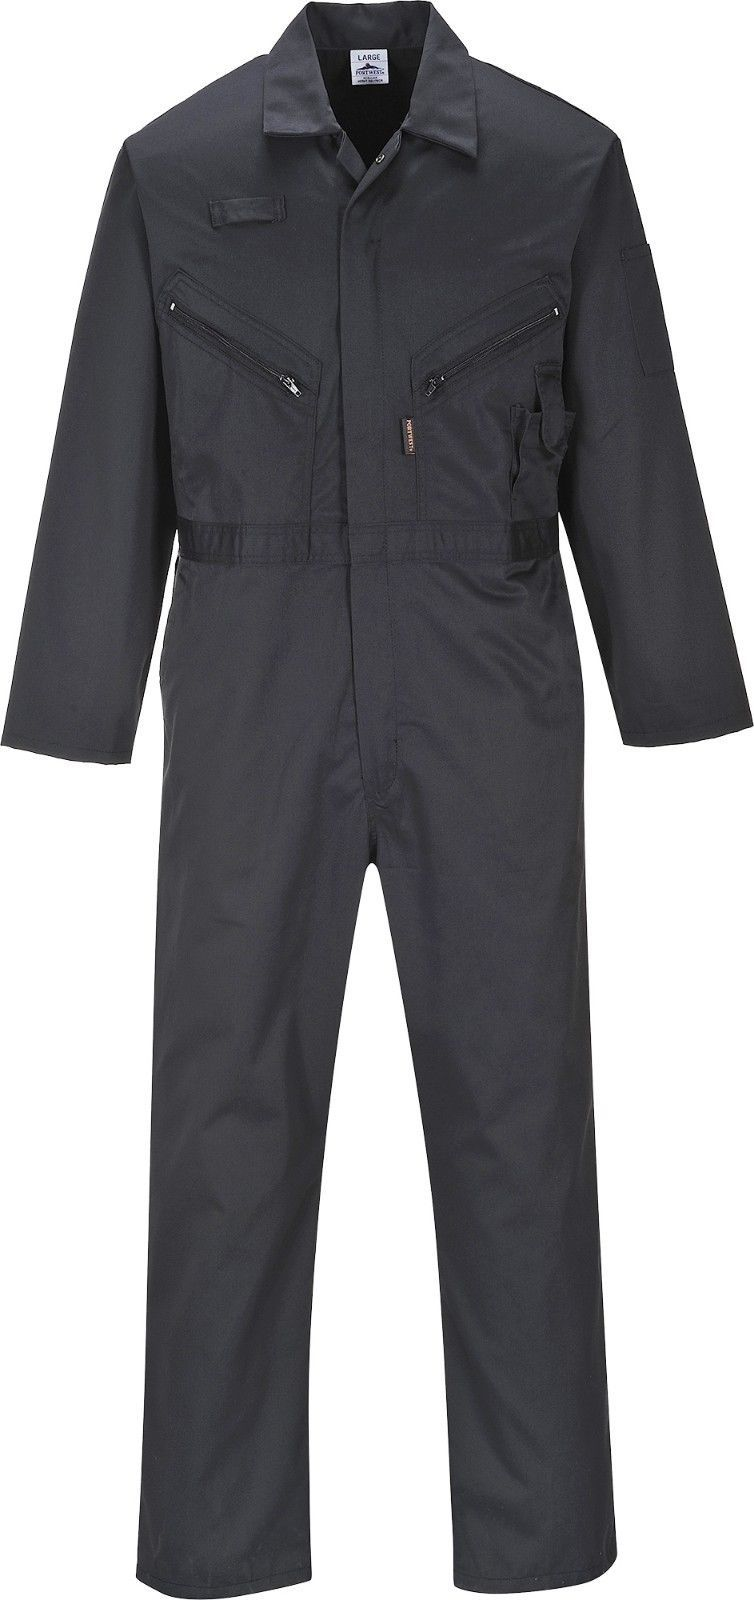 portwest zip coverall overall protective work mechanic on cheap insulated coveralls for men id=51837